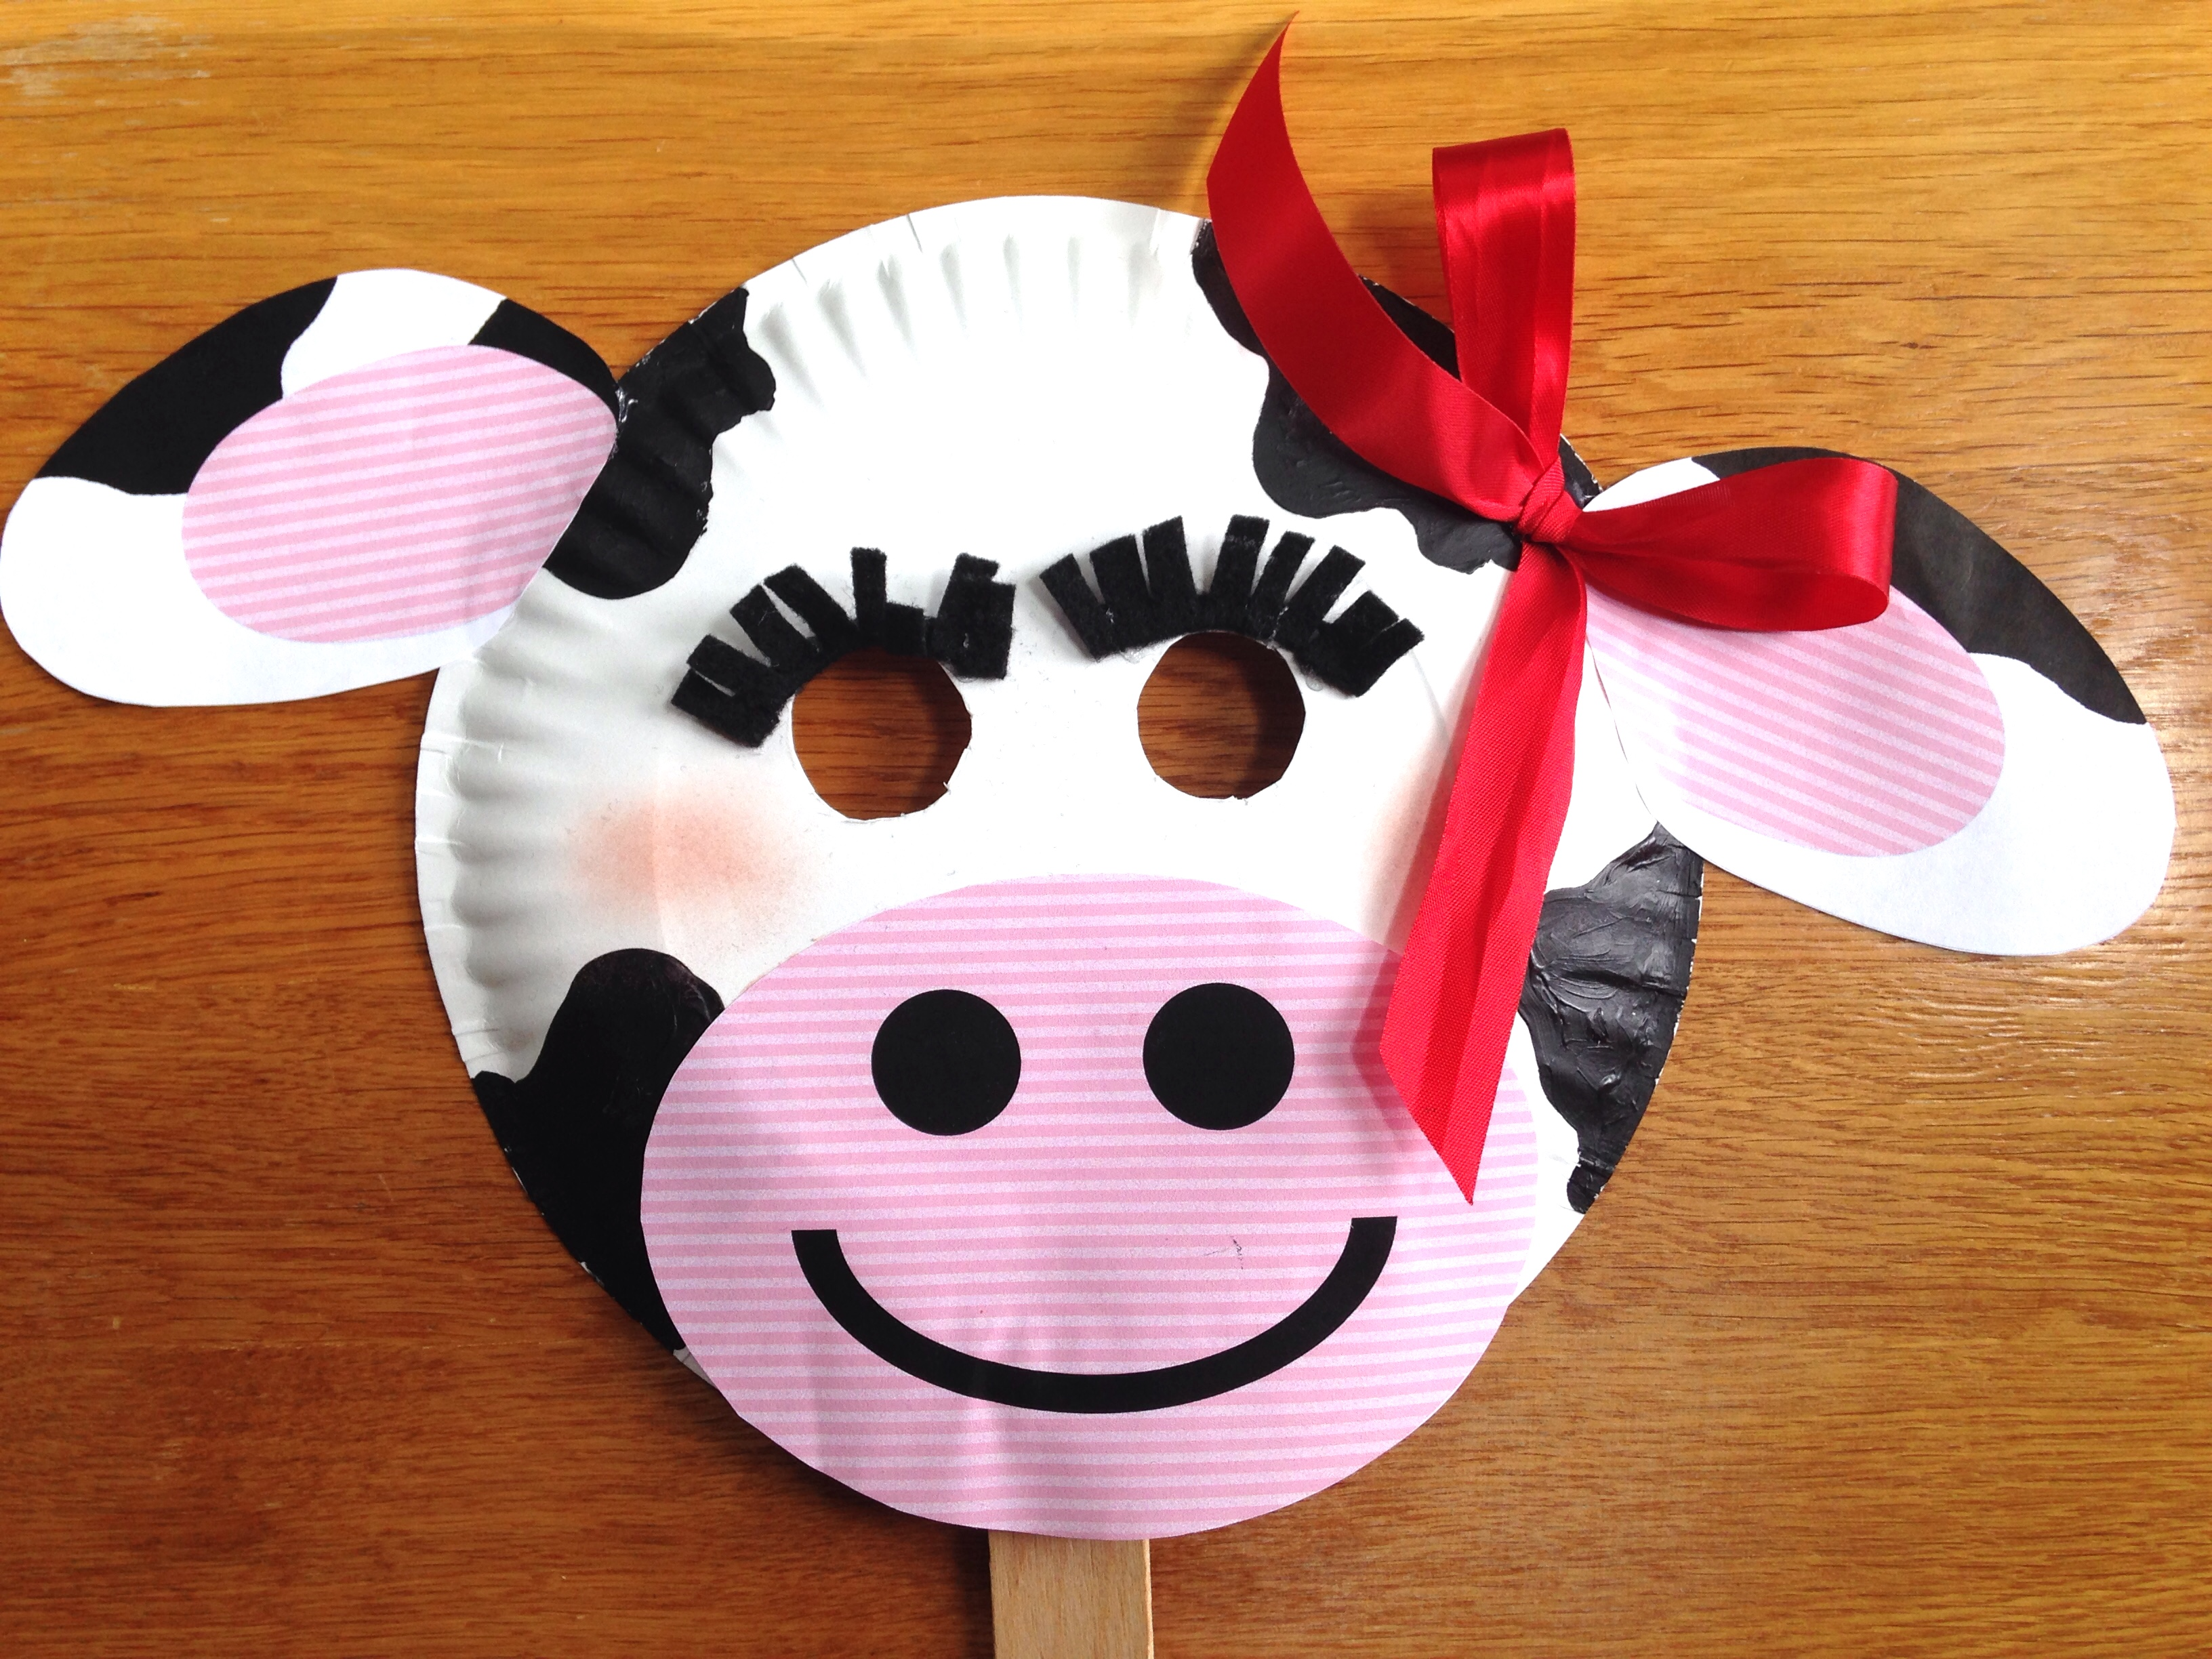 photograph relating to Free Printable Cow Mask called Chick-fil-A Cow Working day Paper Plate Cow Masks With Totally free